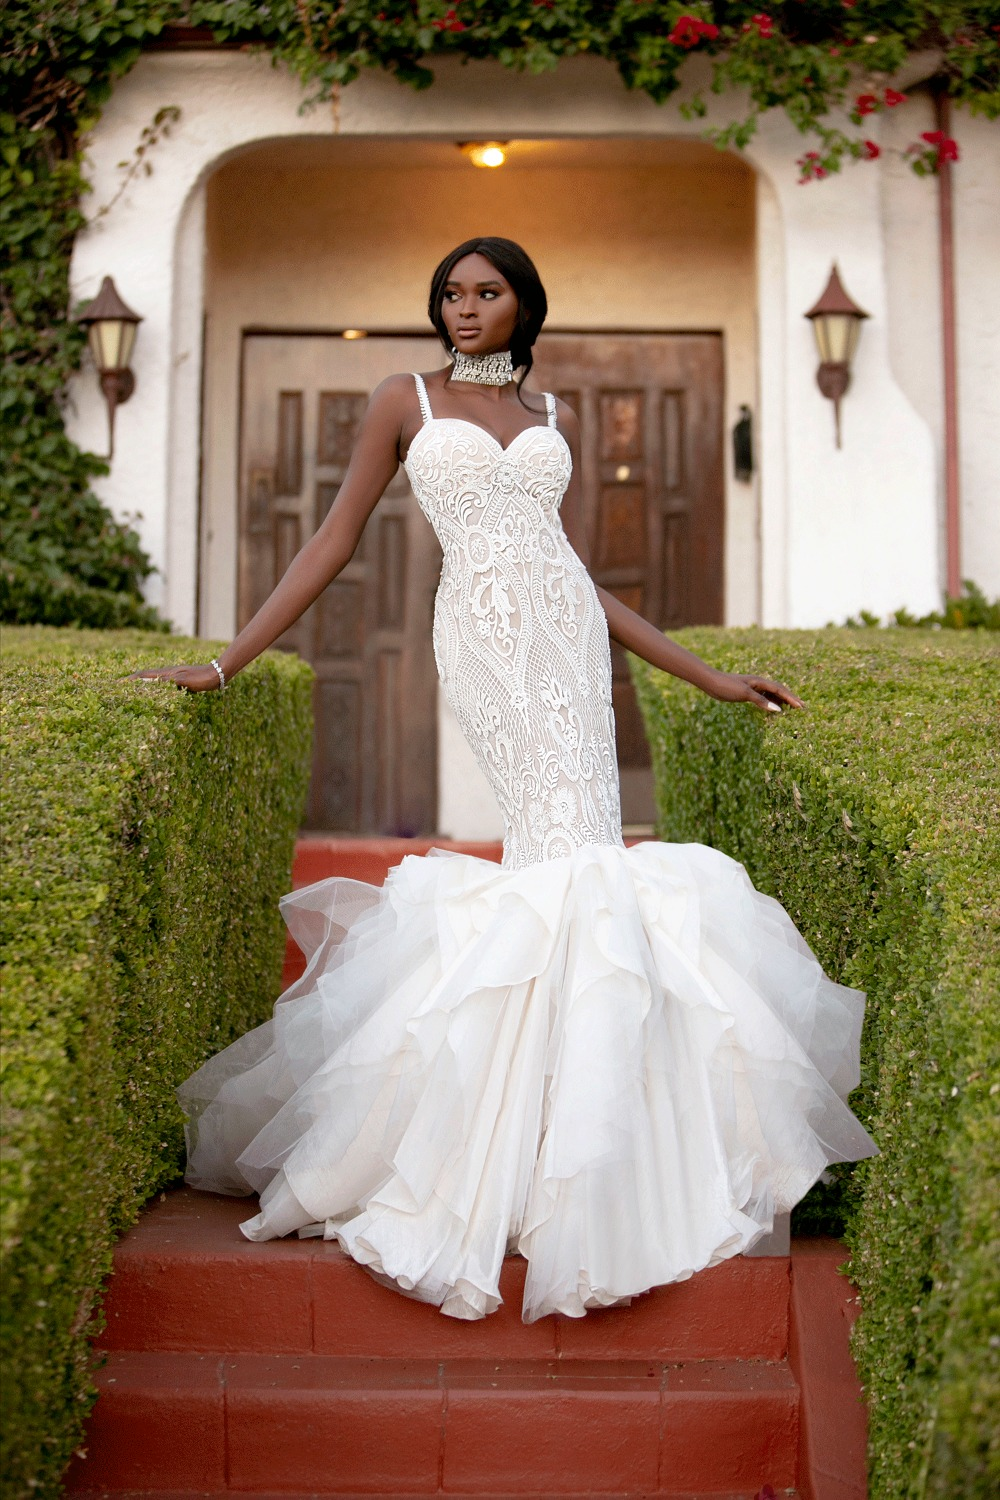 Fierce Lady Dress Collection by Naama & Anat Haute Couture